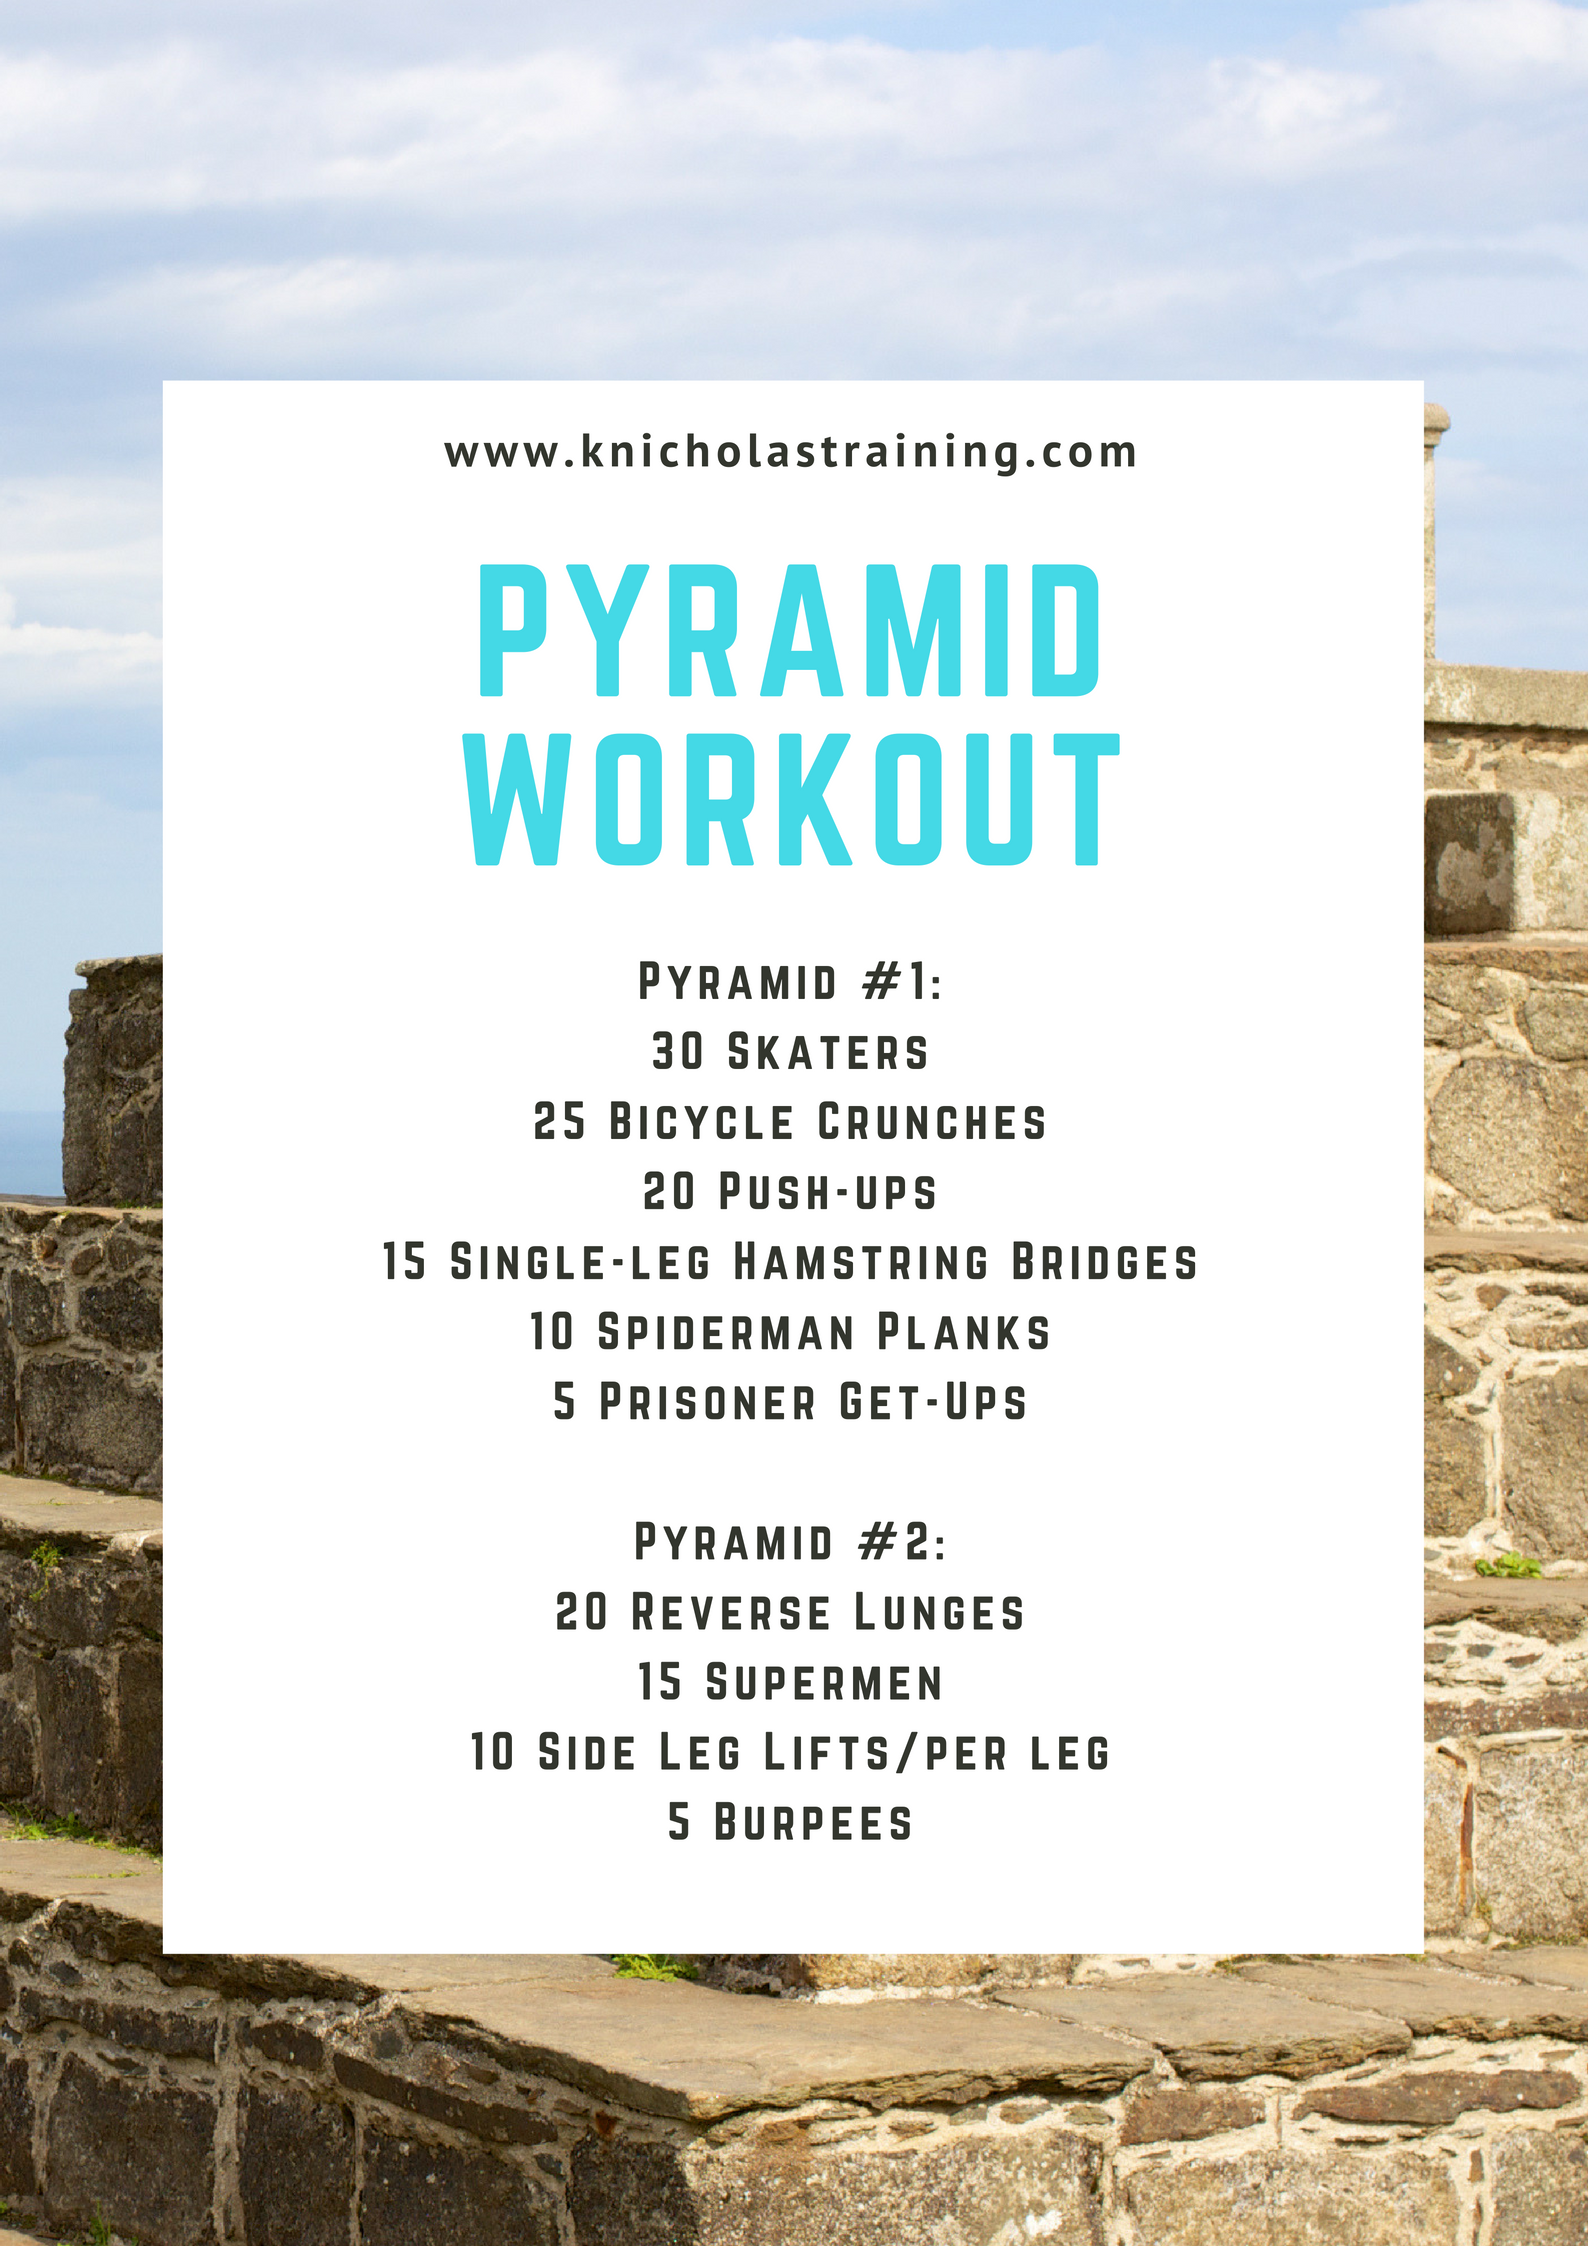 This one is a great workout to get your heart rate up. Complete the list of exercises in the circuit, and then reverse back up the list repeating the movements again. Click on the image for more explanations on the movements and the workout.